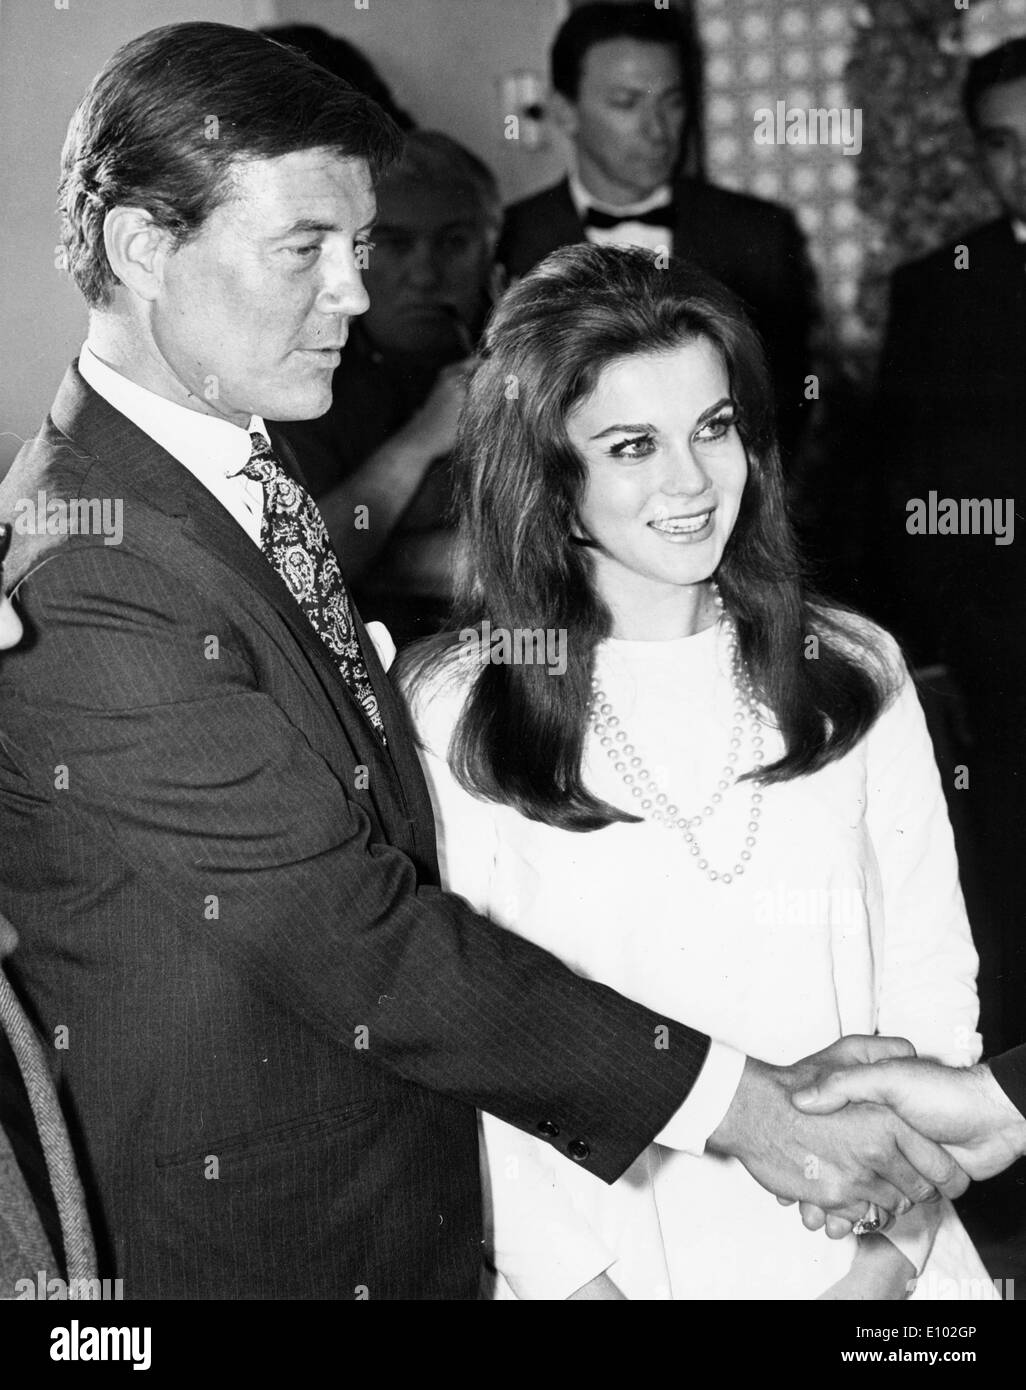 Ann-Margret and Roger Smith wed in Vegas - Stock Image